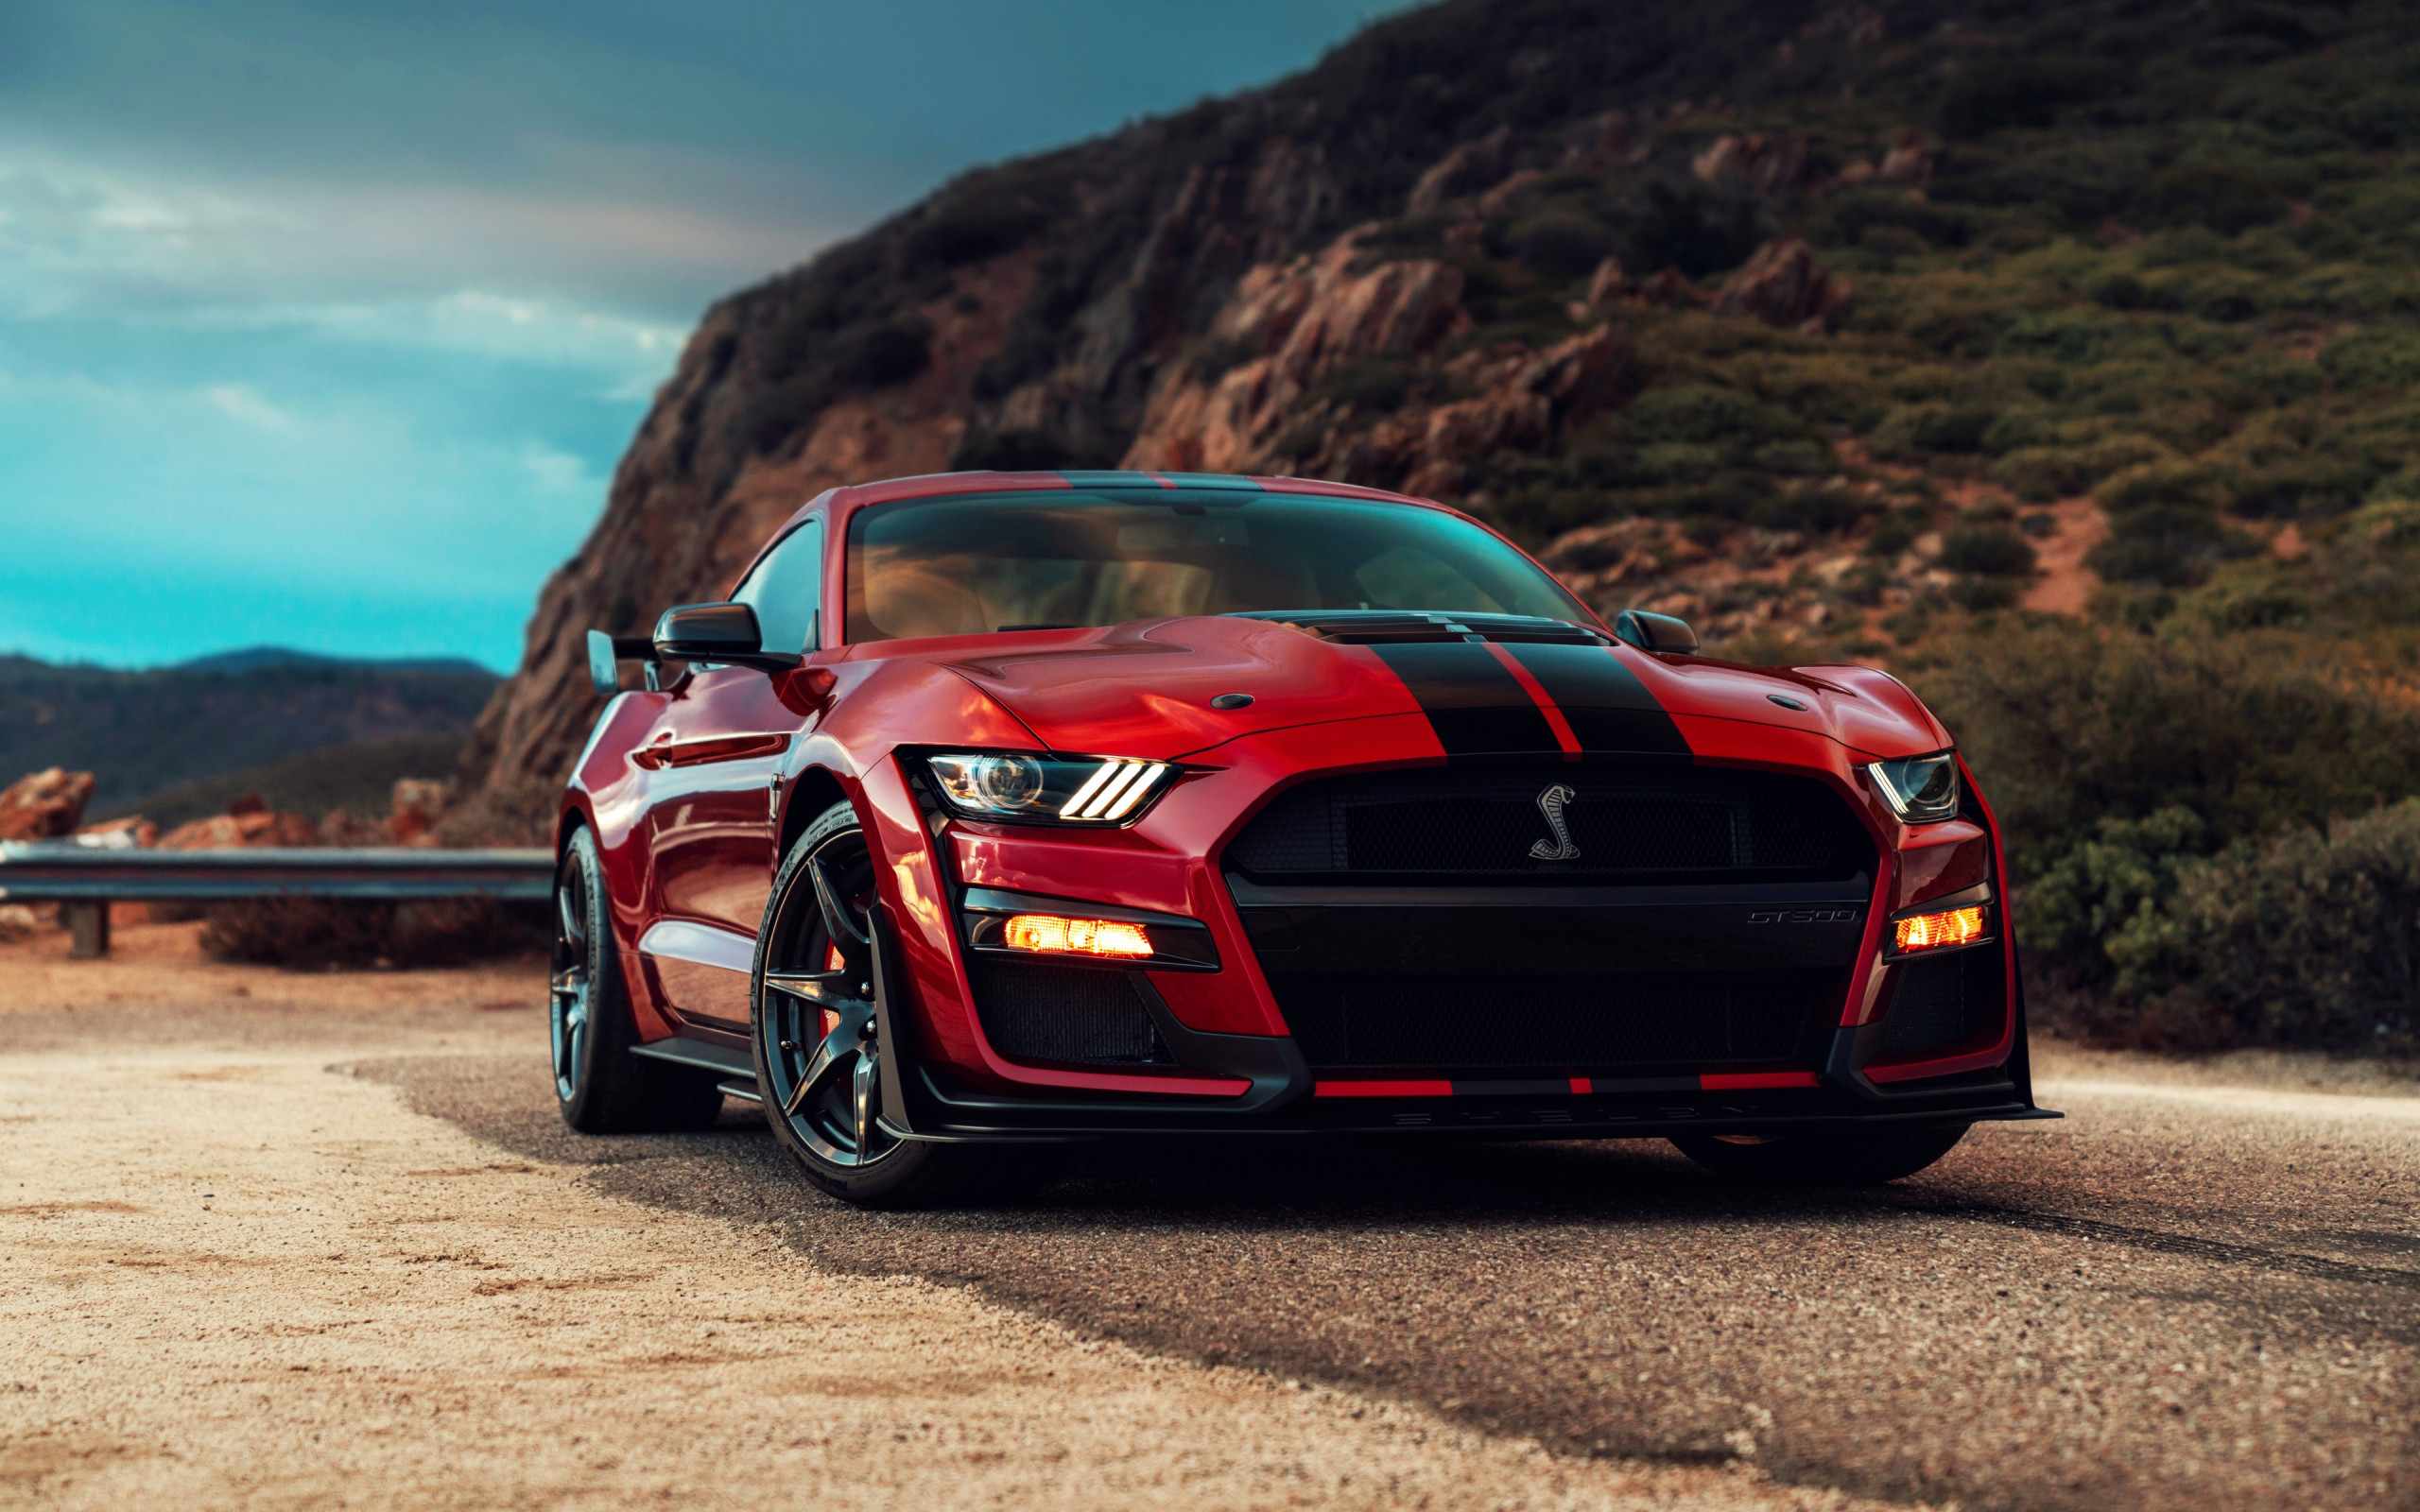 Ford Mustang Shelby GT500 | 2560x1600 wallpaper